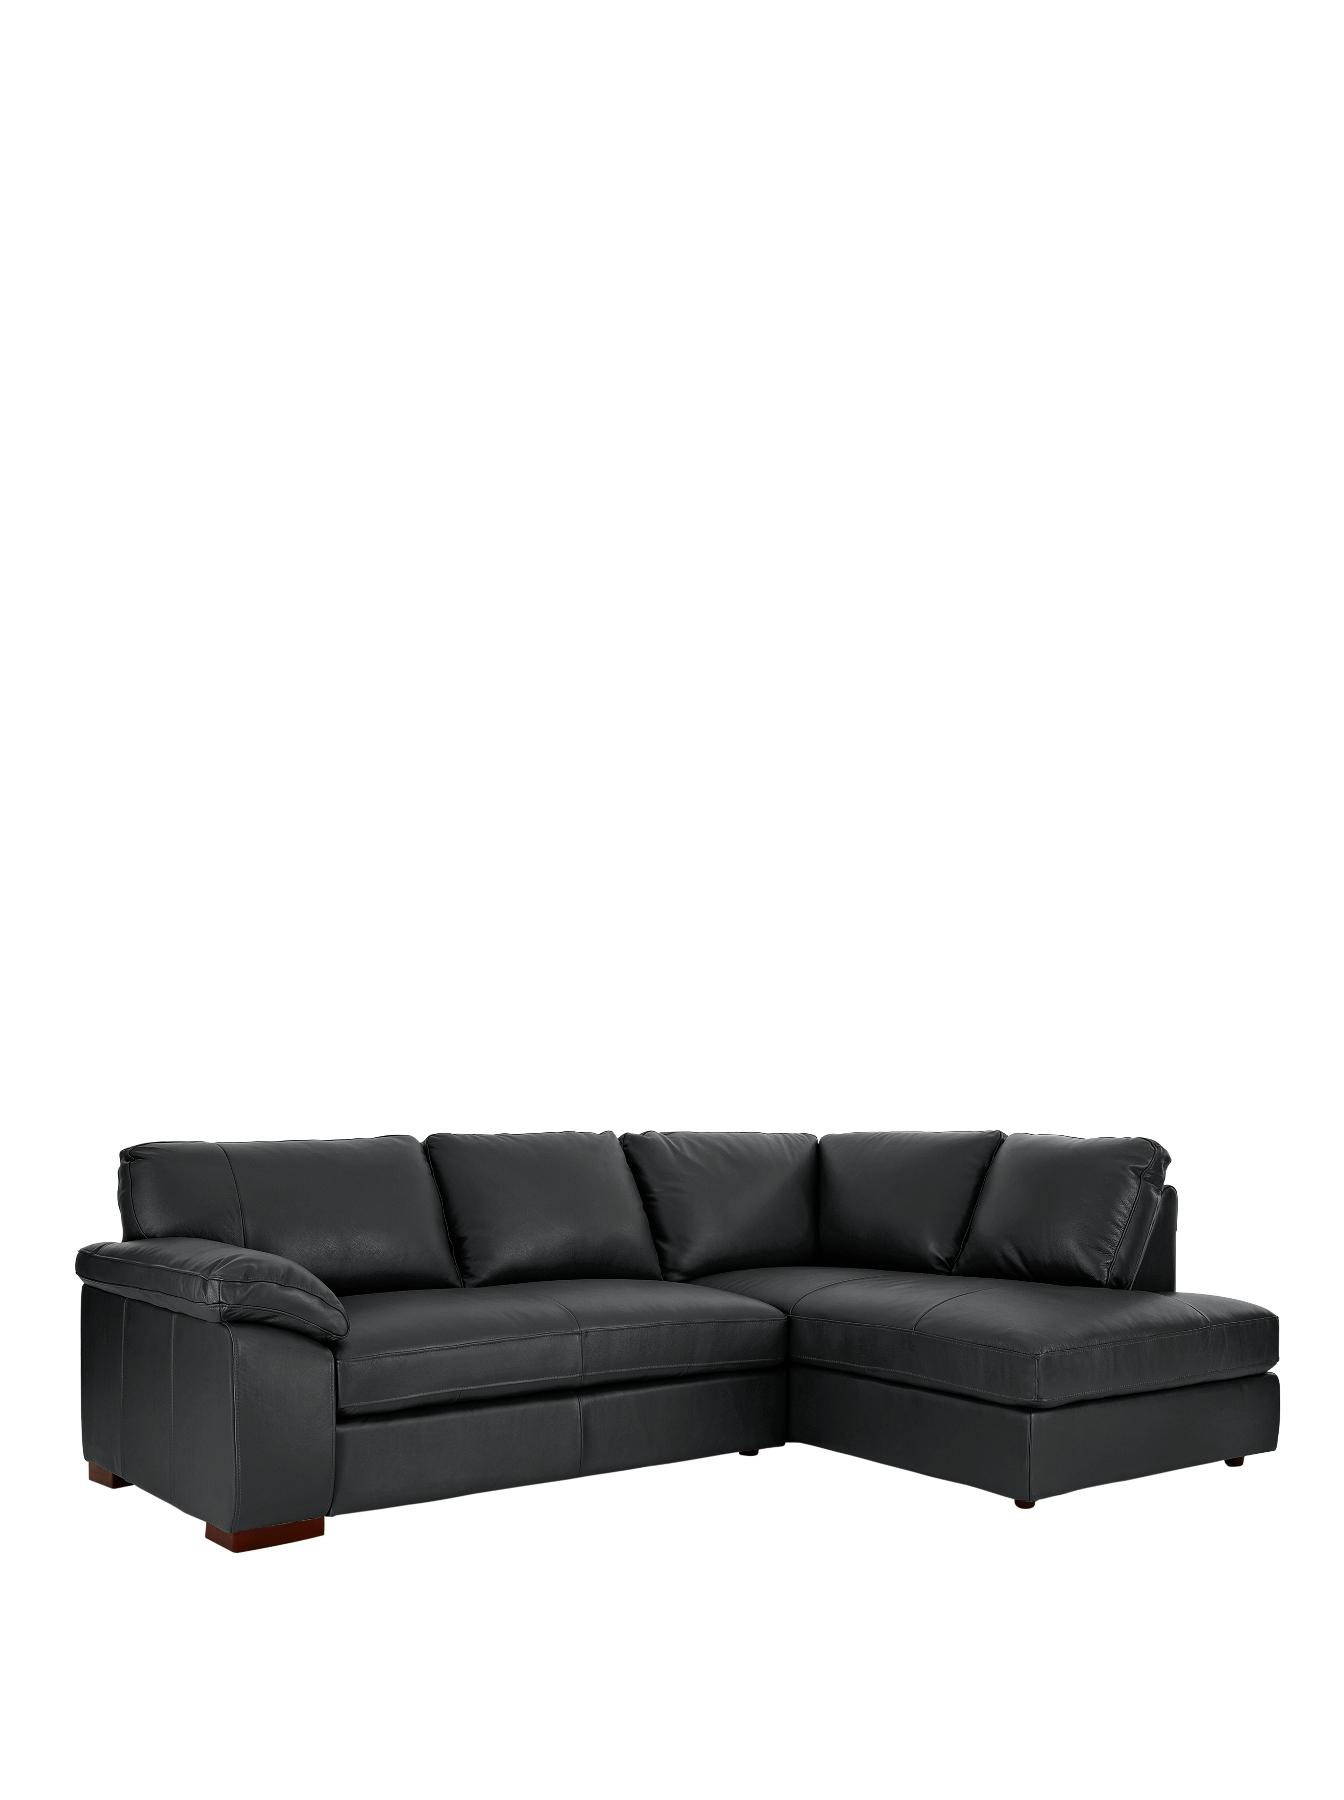 Renee Right Hand Leather Corner Group Sofa BlackTaupe